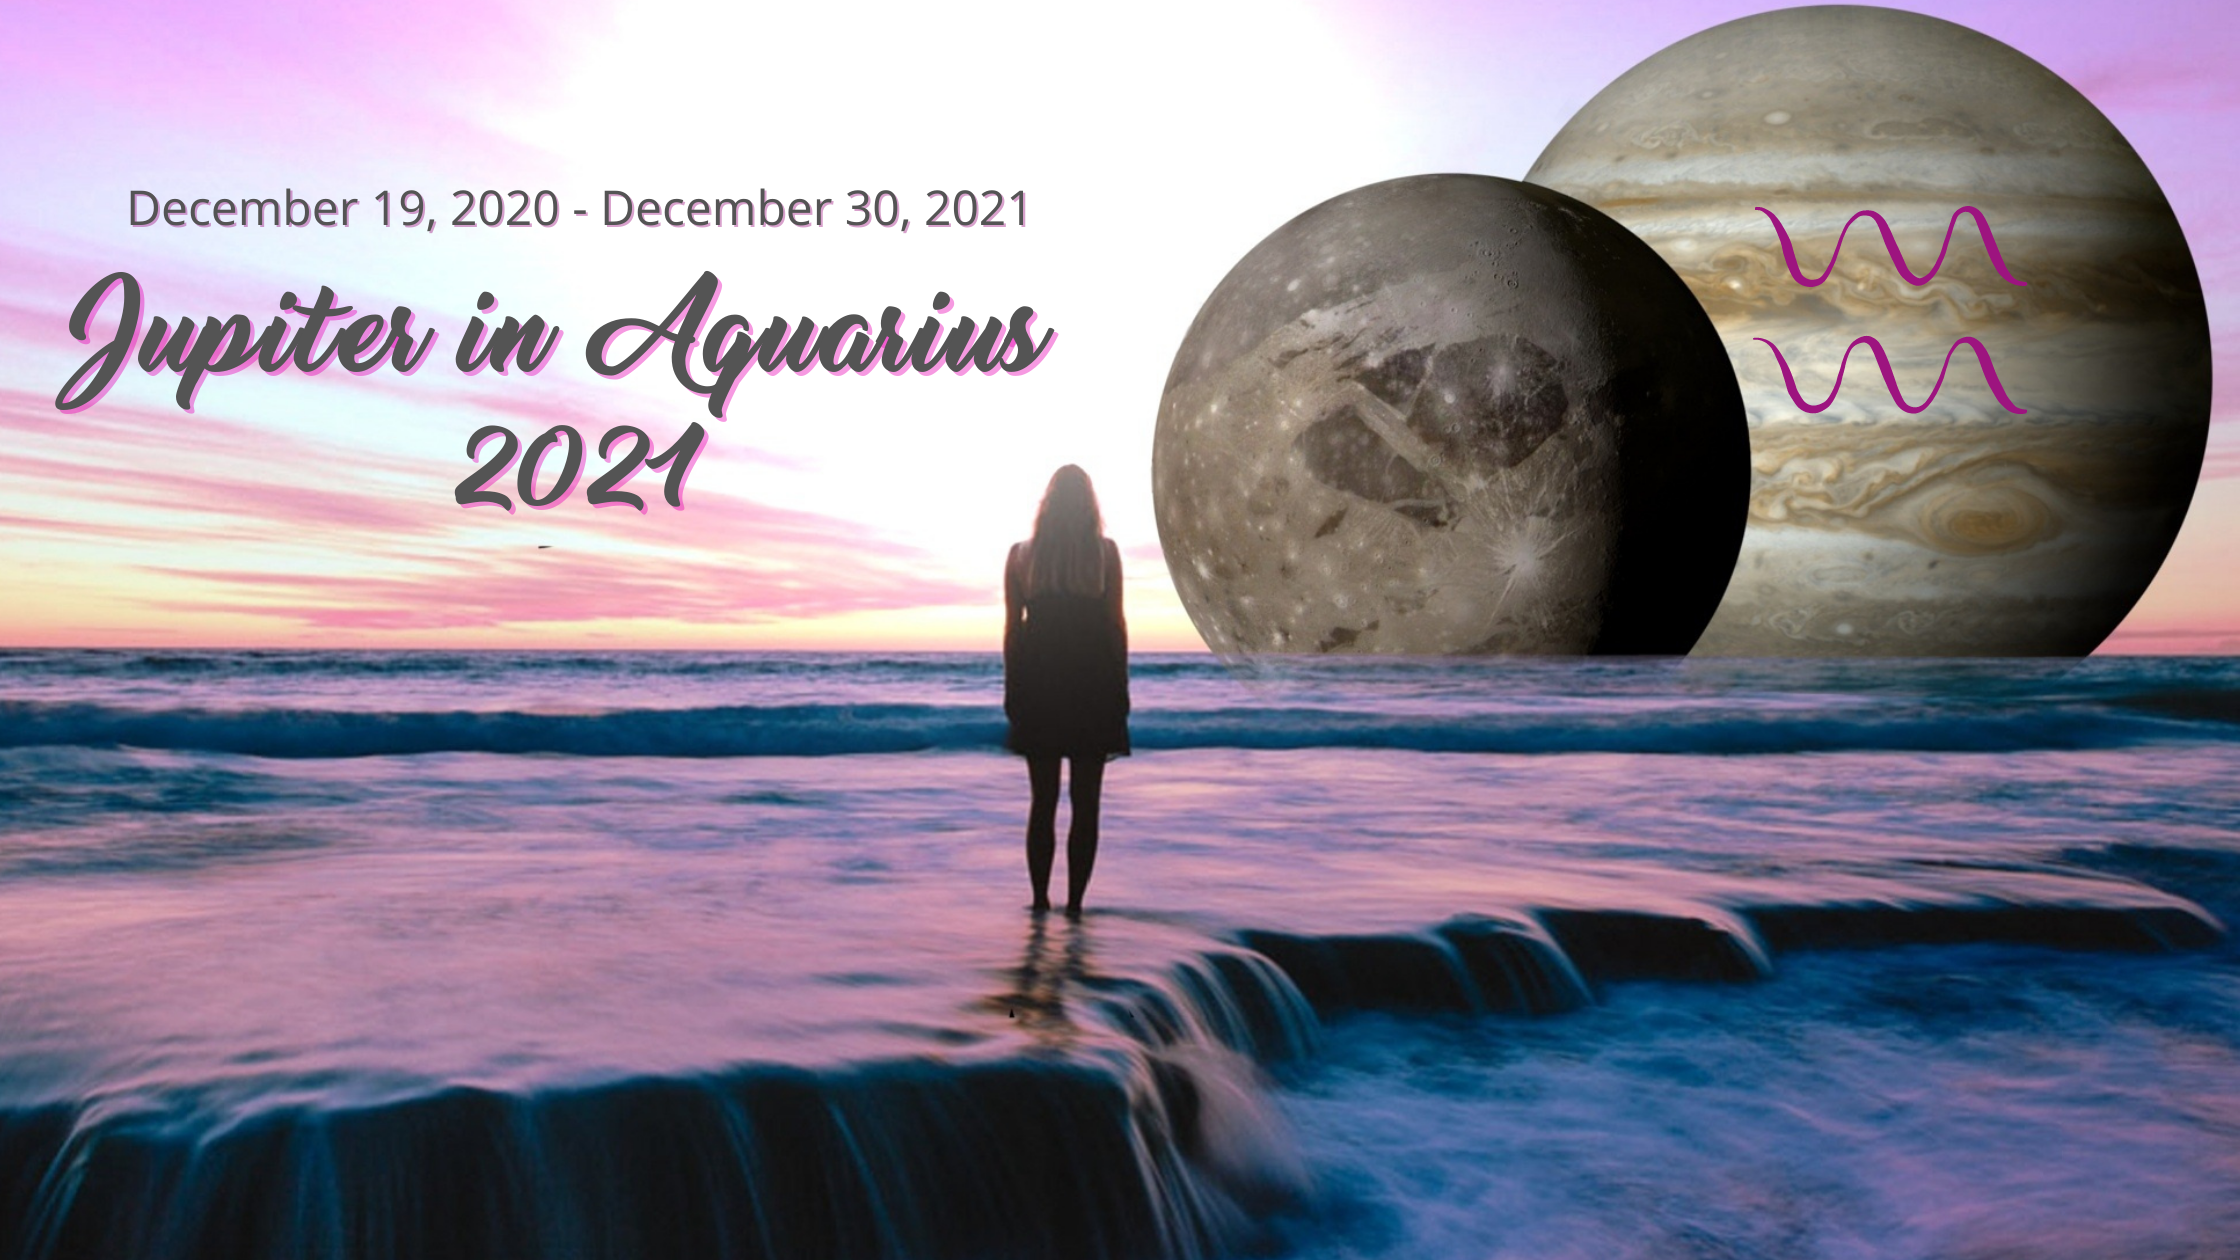 Jupiter in Aquarius 2021